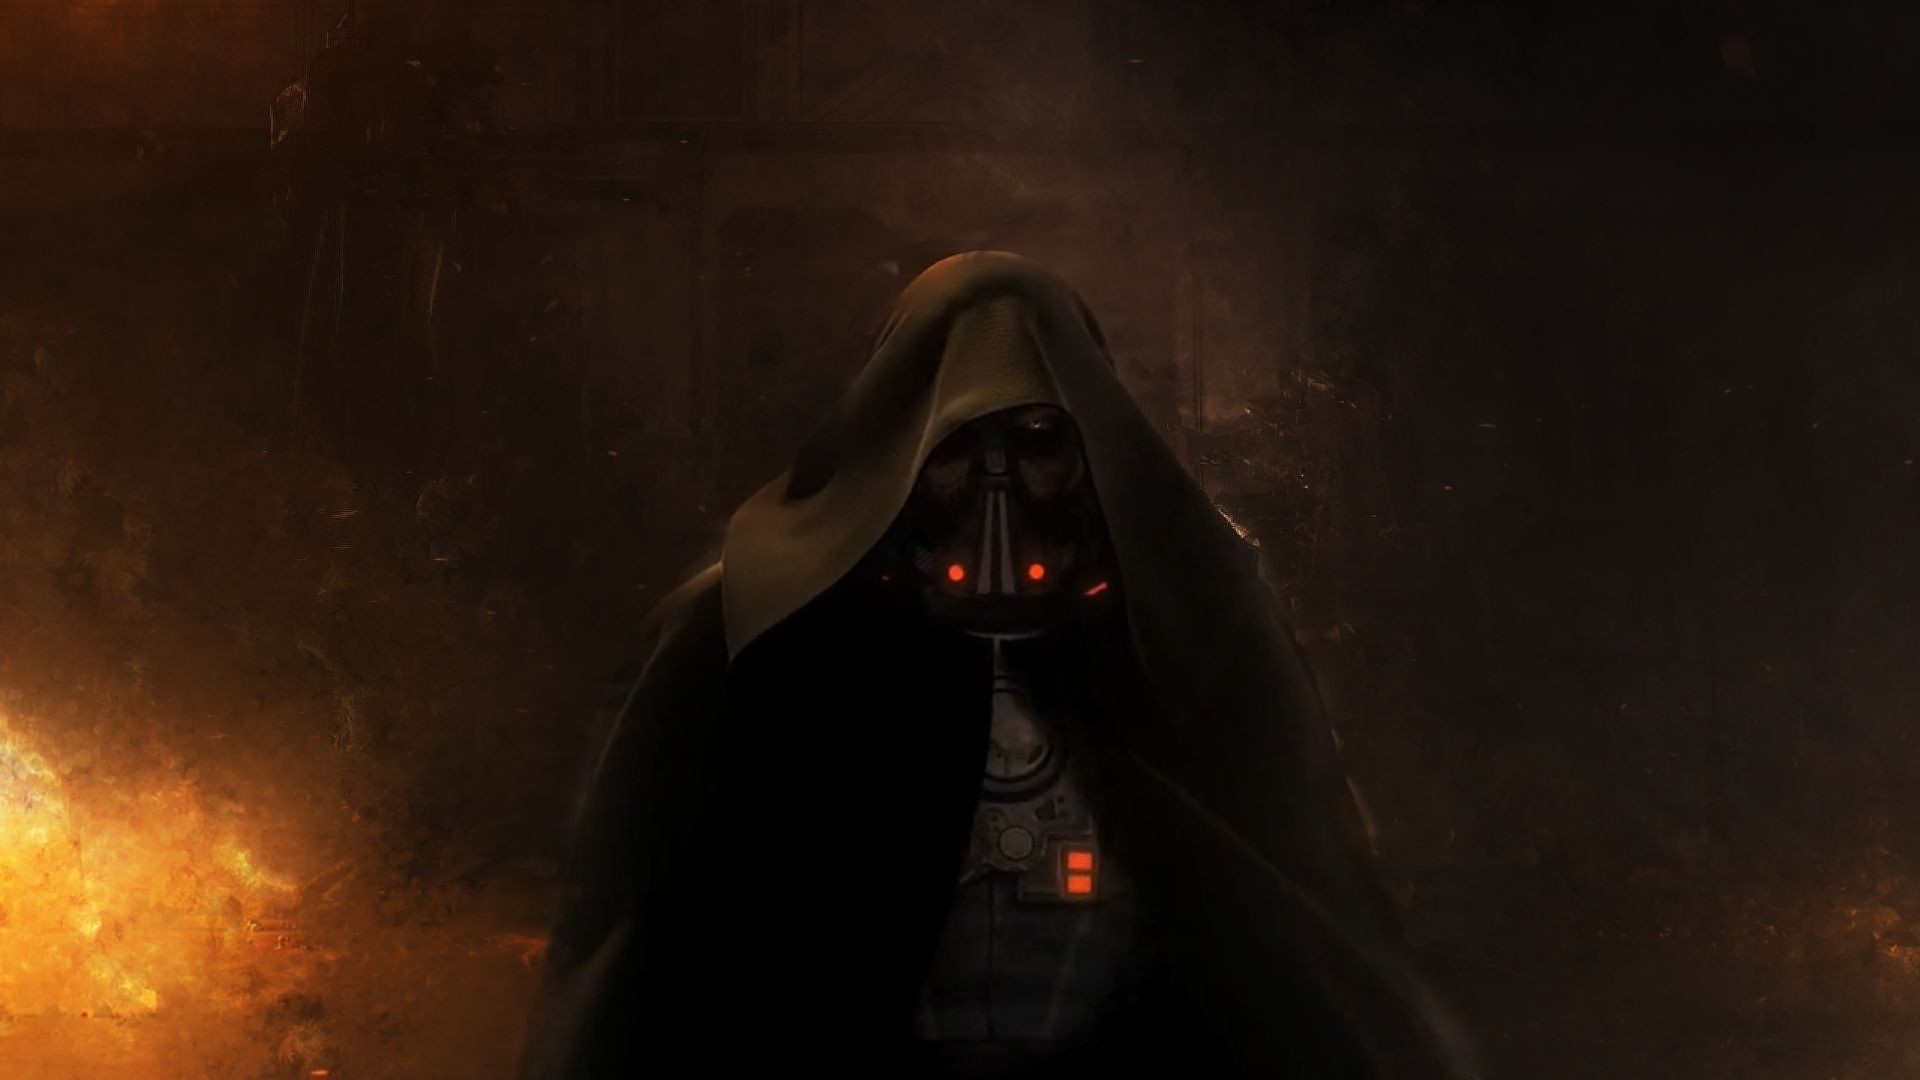 Star Wars Sith Wallpapers High Quality Resolution As Wallpaper HD